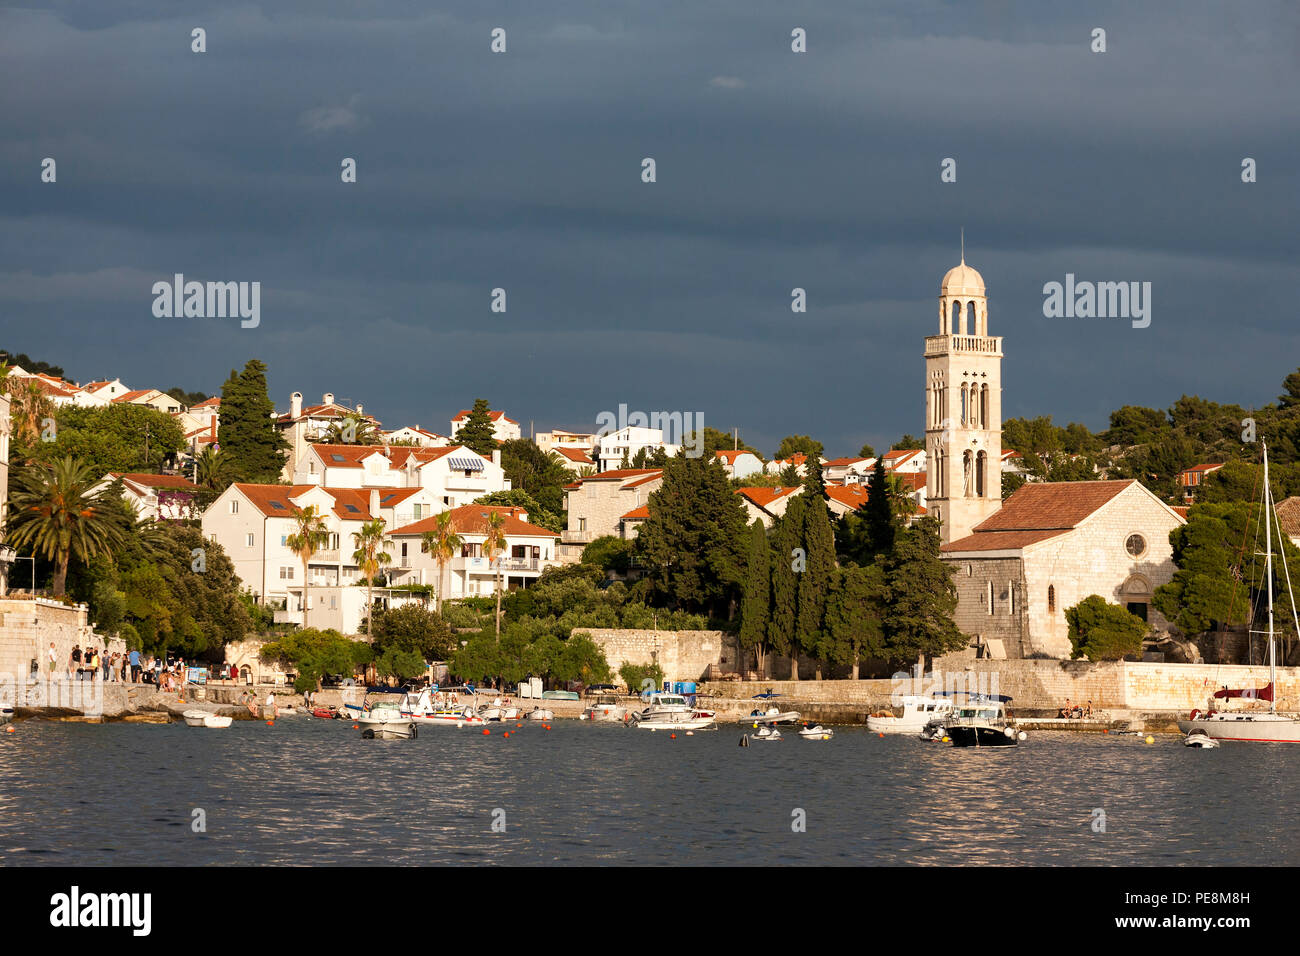 The campanile of the 15th century Franciscan Monastery, Hvar, Croatia, seen from across the harbour Stock Photo